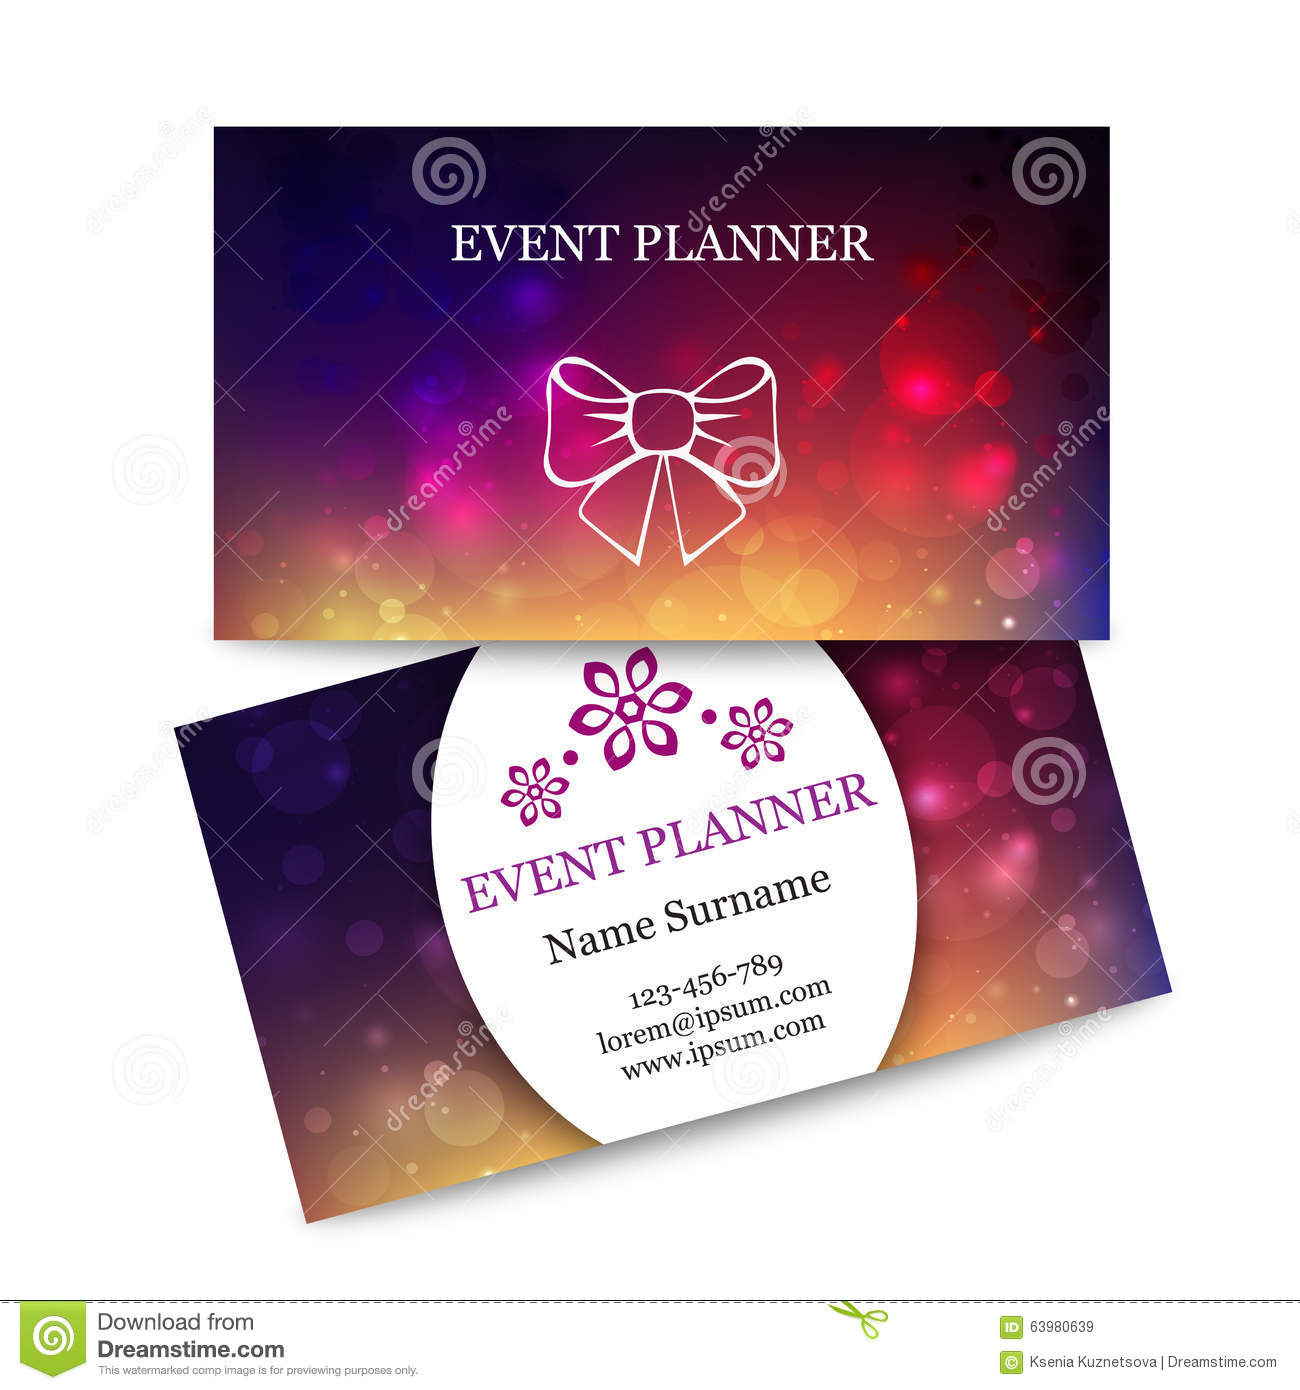 Template colorful business cards for event planner stock vector template colorful business cards for event planner cheaphphosting Choice Image